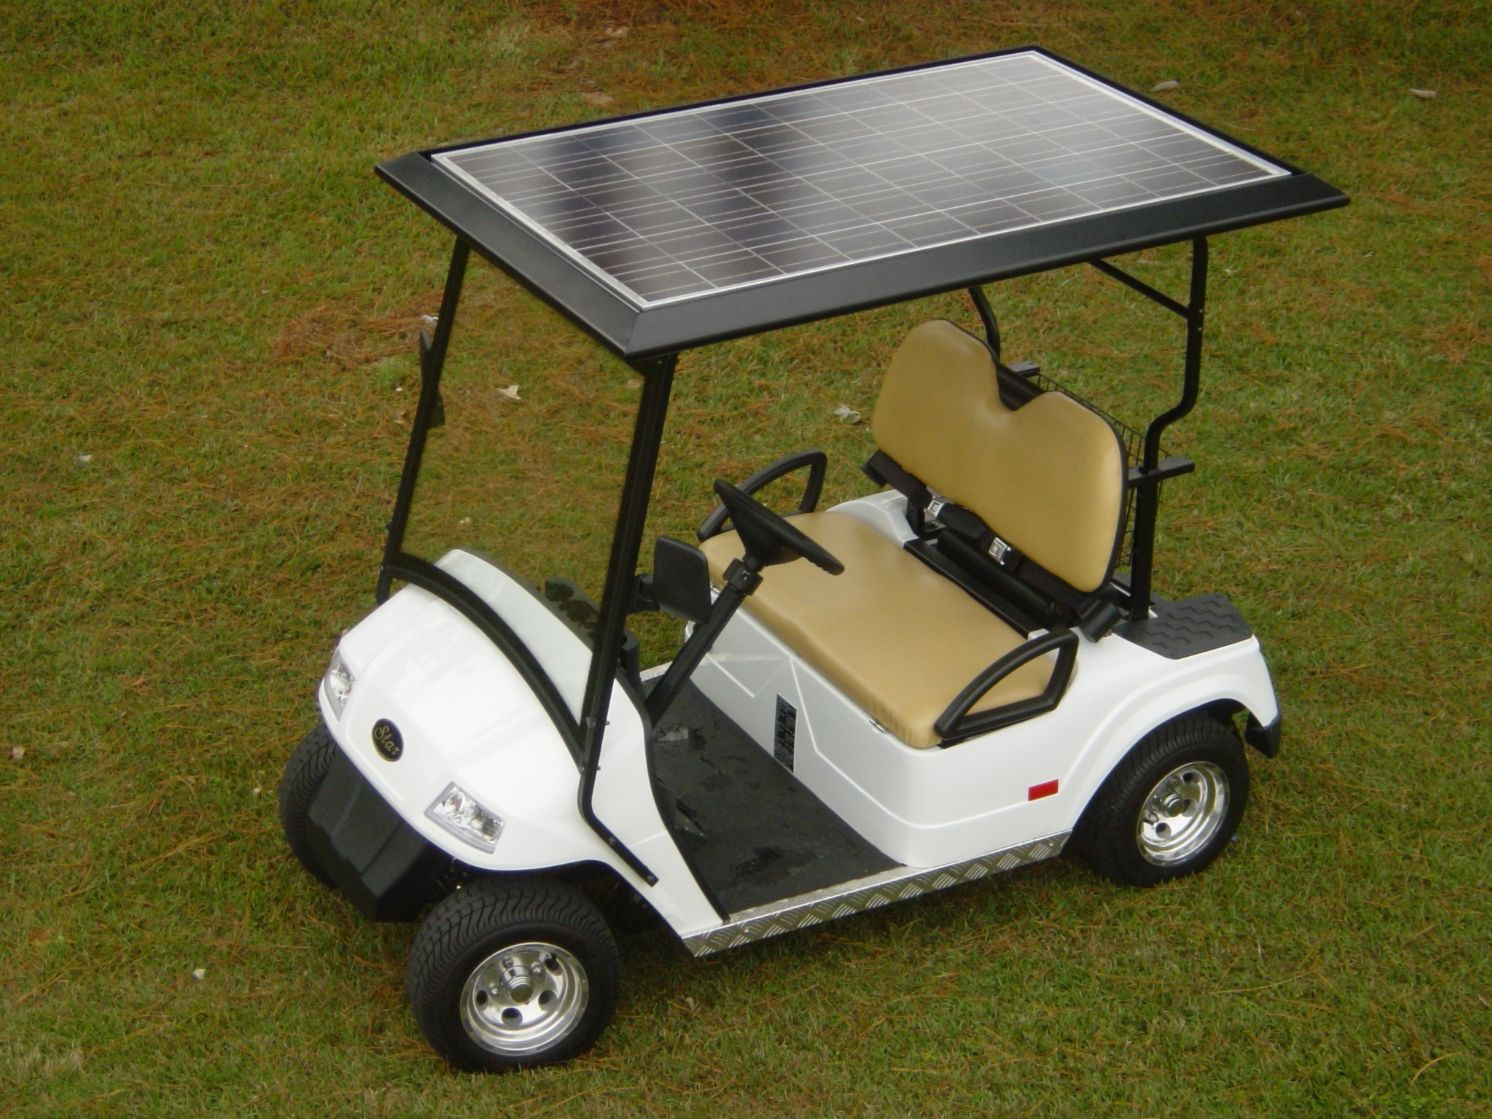 Charming Solar Panel As The Golf Cart Top, 235 Watts